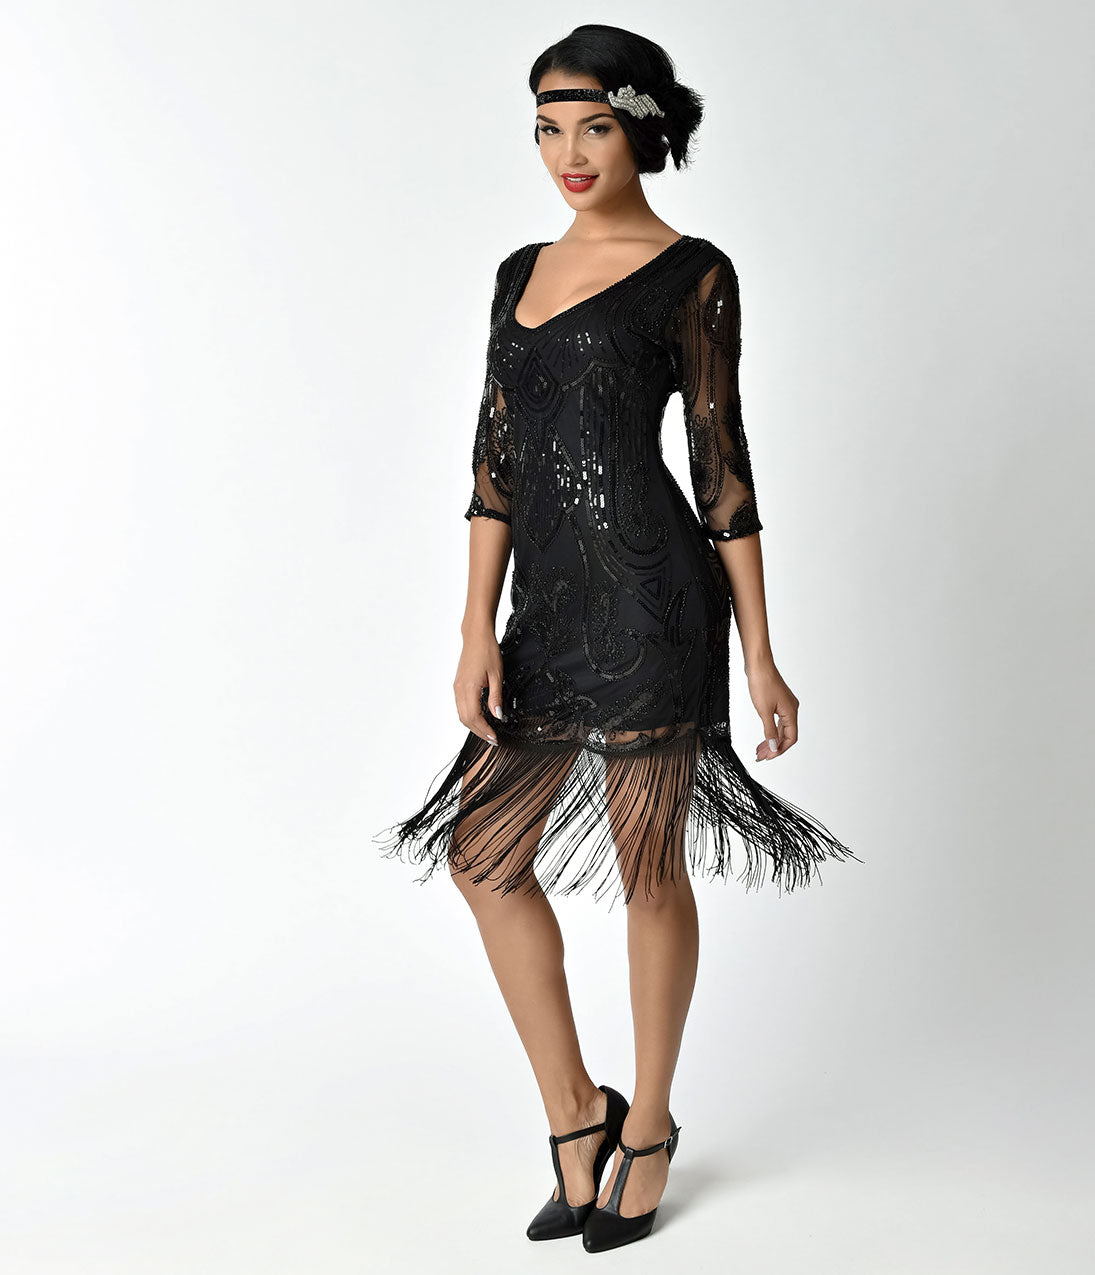 Downton Abbey Inspired Dresses Unique Vintage Black Beaded  Sequin Margaux Sleeved Fringe Cocktail Dress $110.00 AT vintagedancer.com